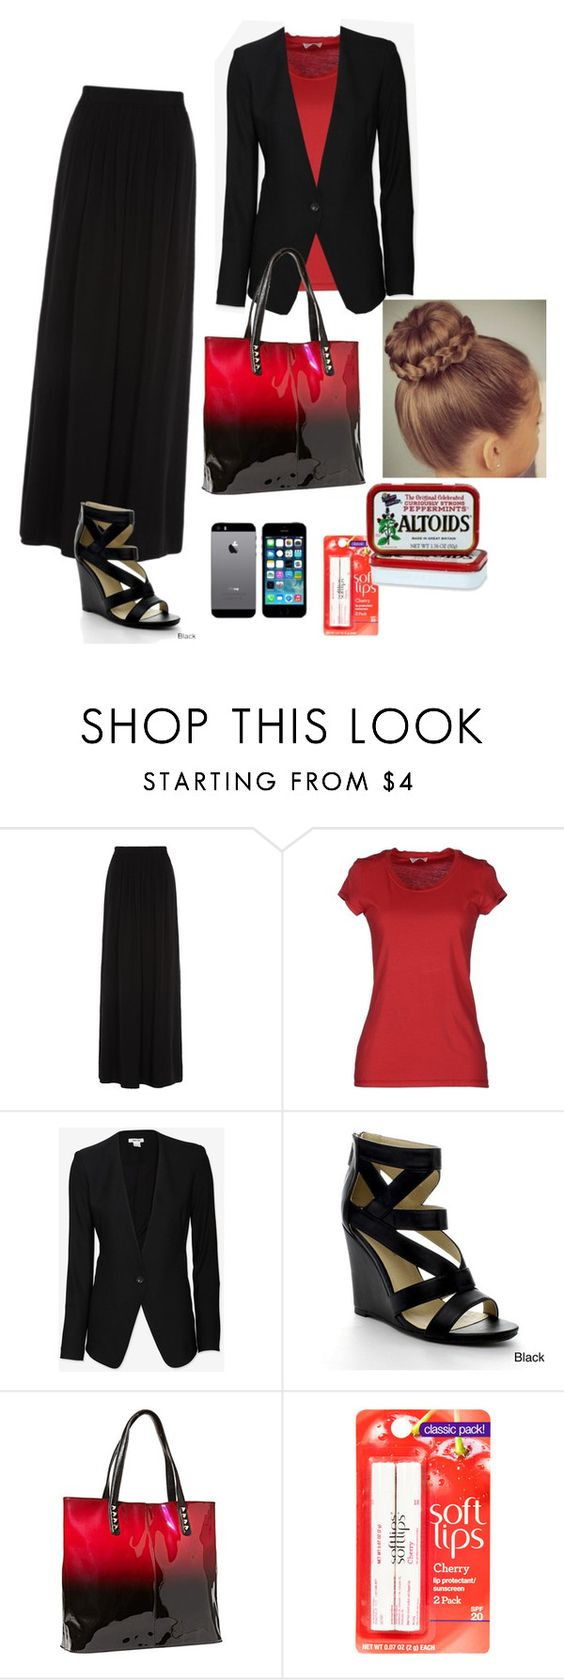 """""""Sunday Night Service"""" by jewelfield ❤ liked on Polyvore featuring Helmut Lang and Betsey Johnson"""